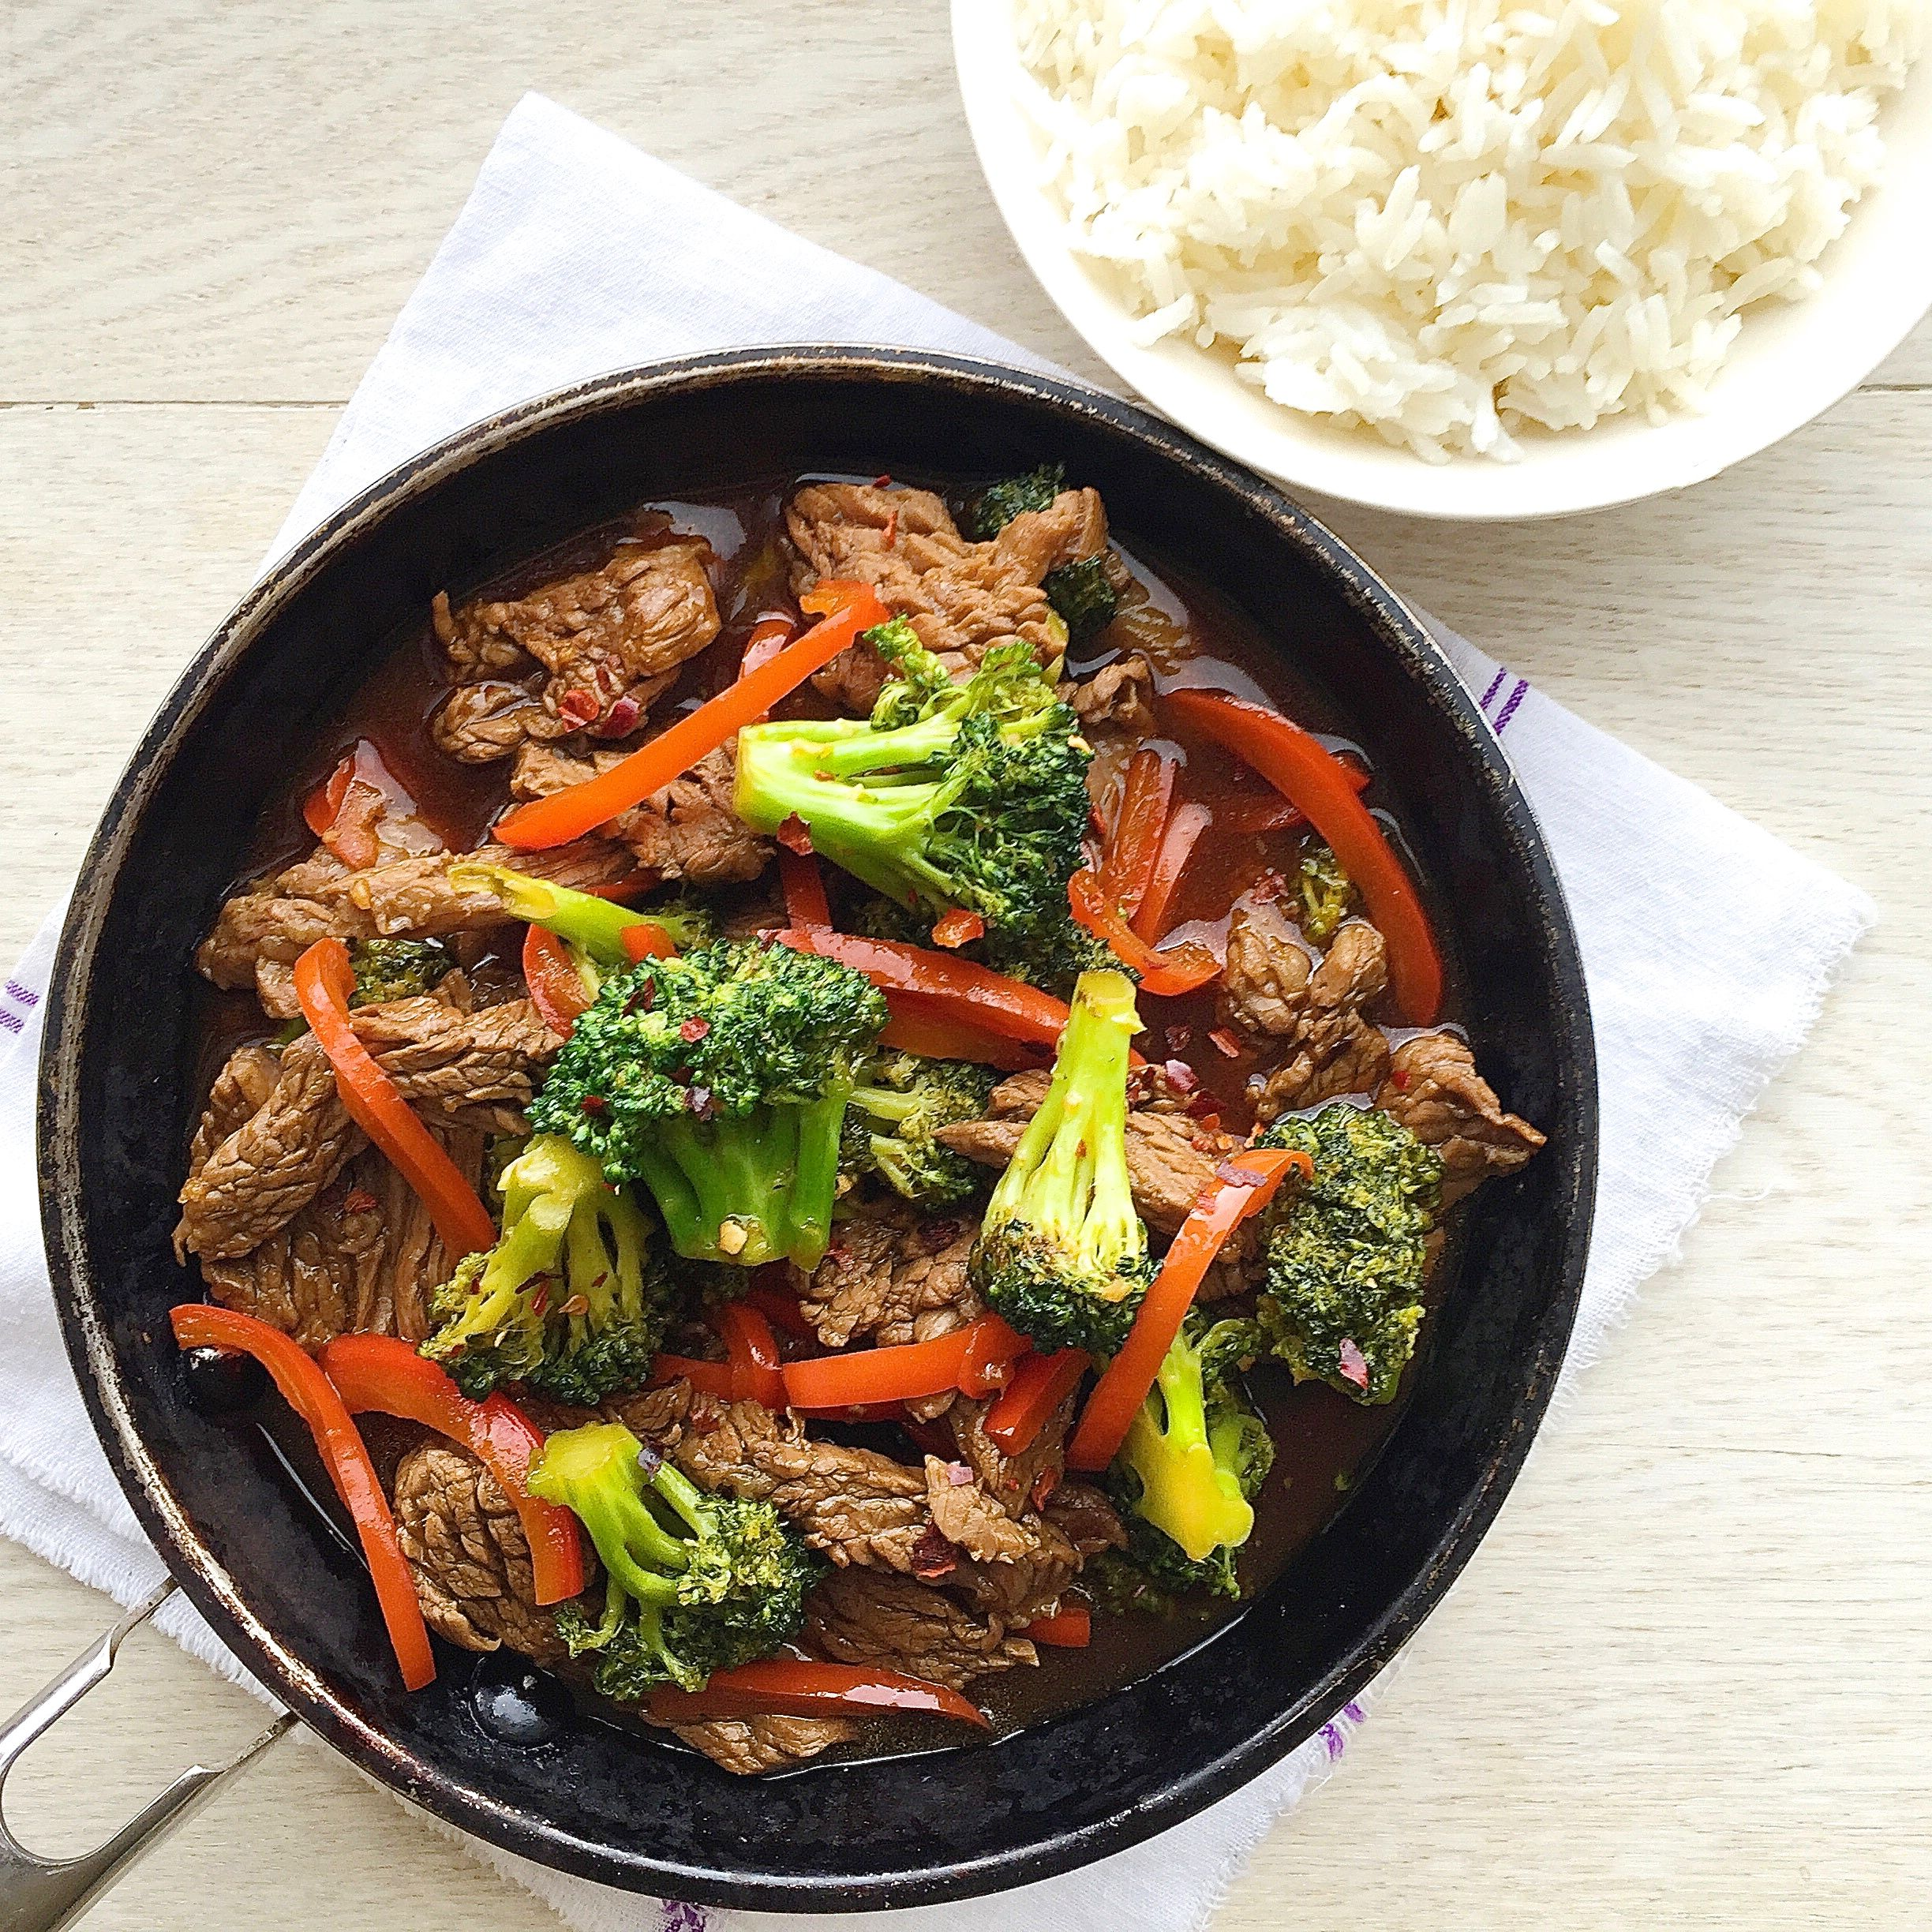 Best Beef And Broccoli With Red Peppers Recipe How To Make Beef And Broccoli With Red Peppers Delish Com